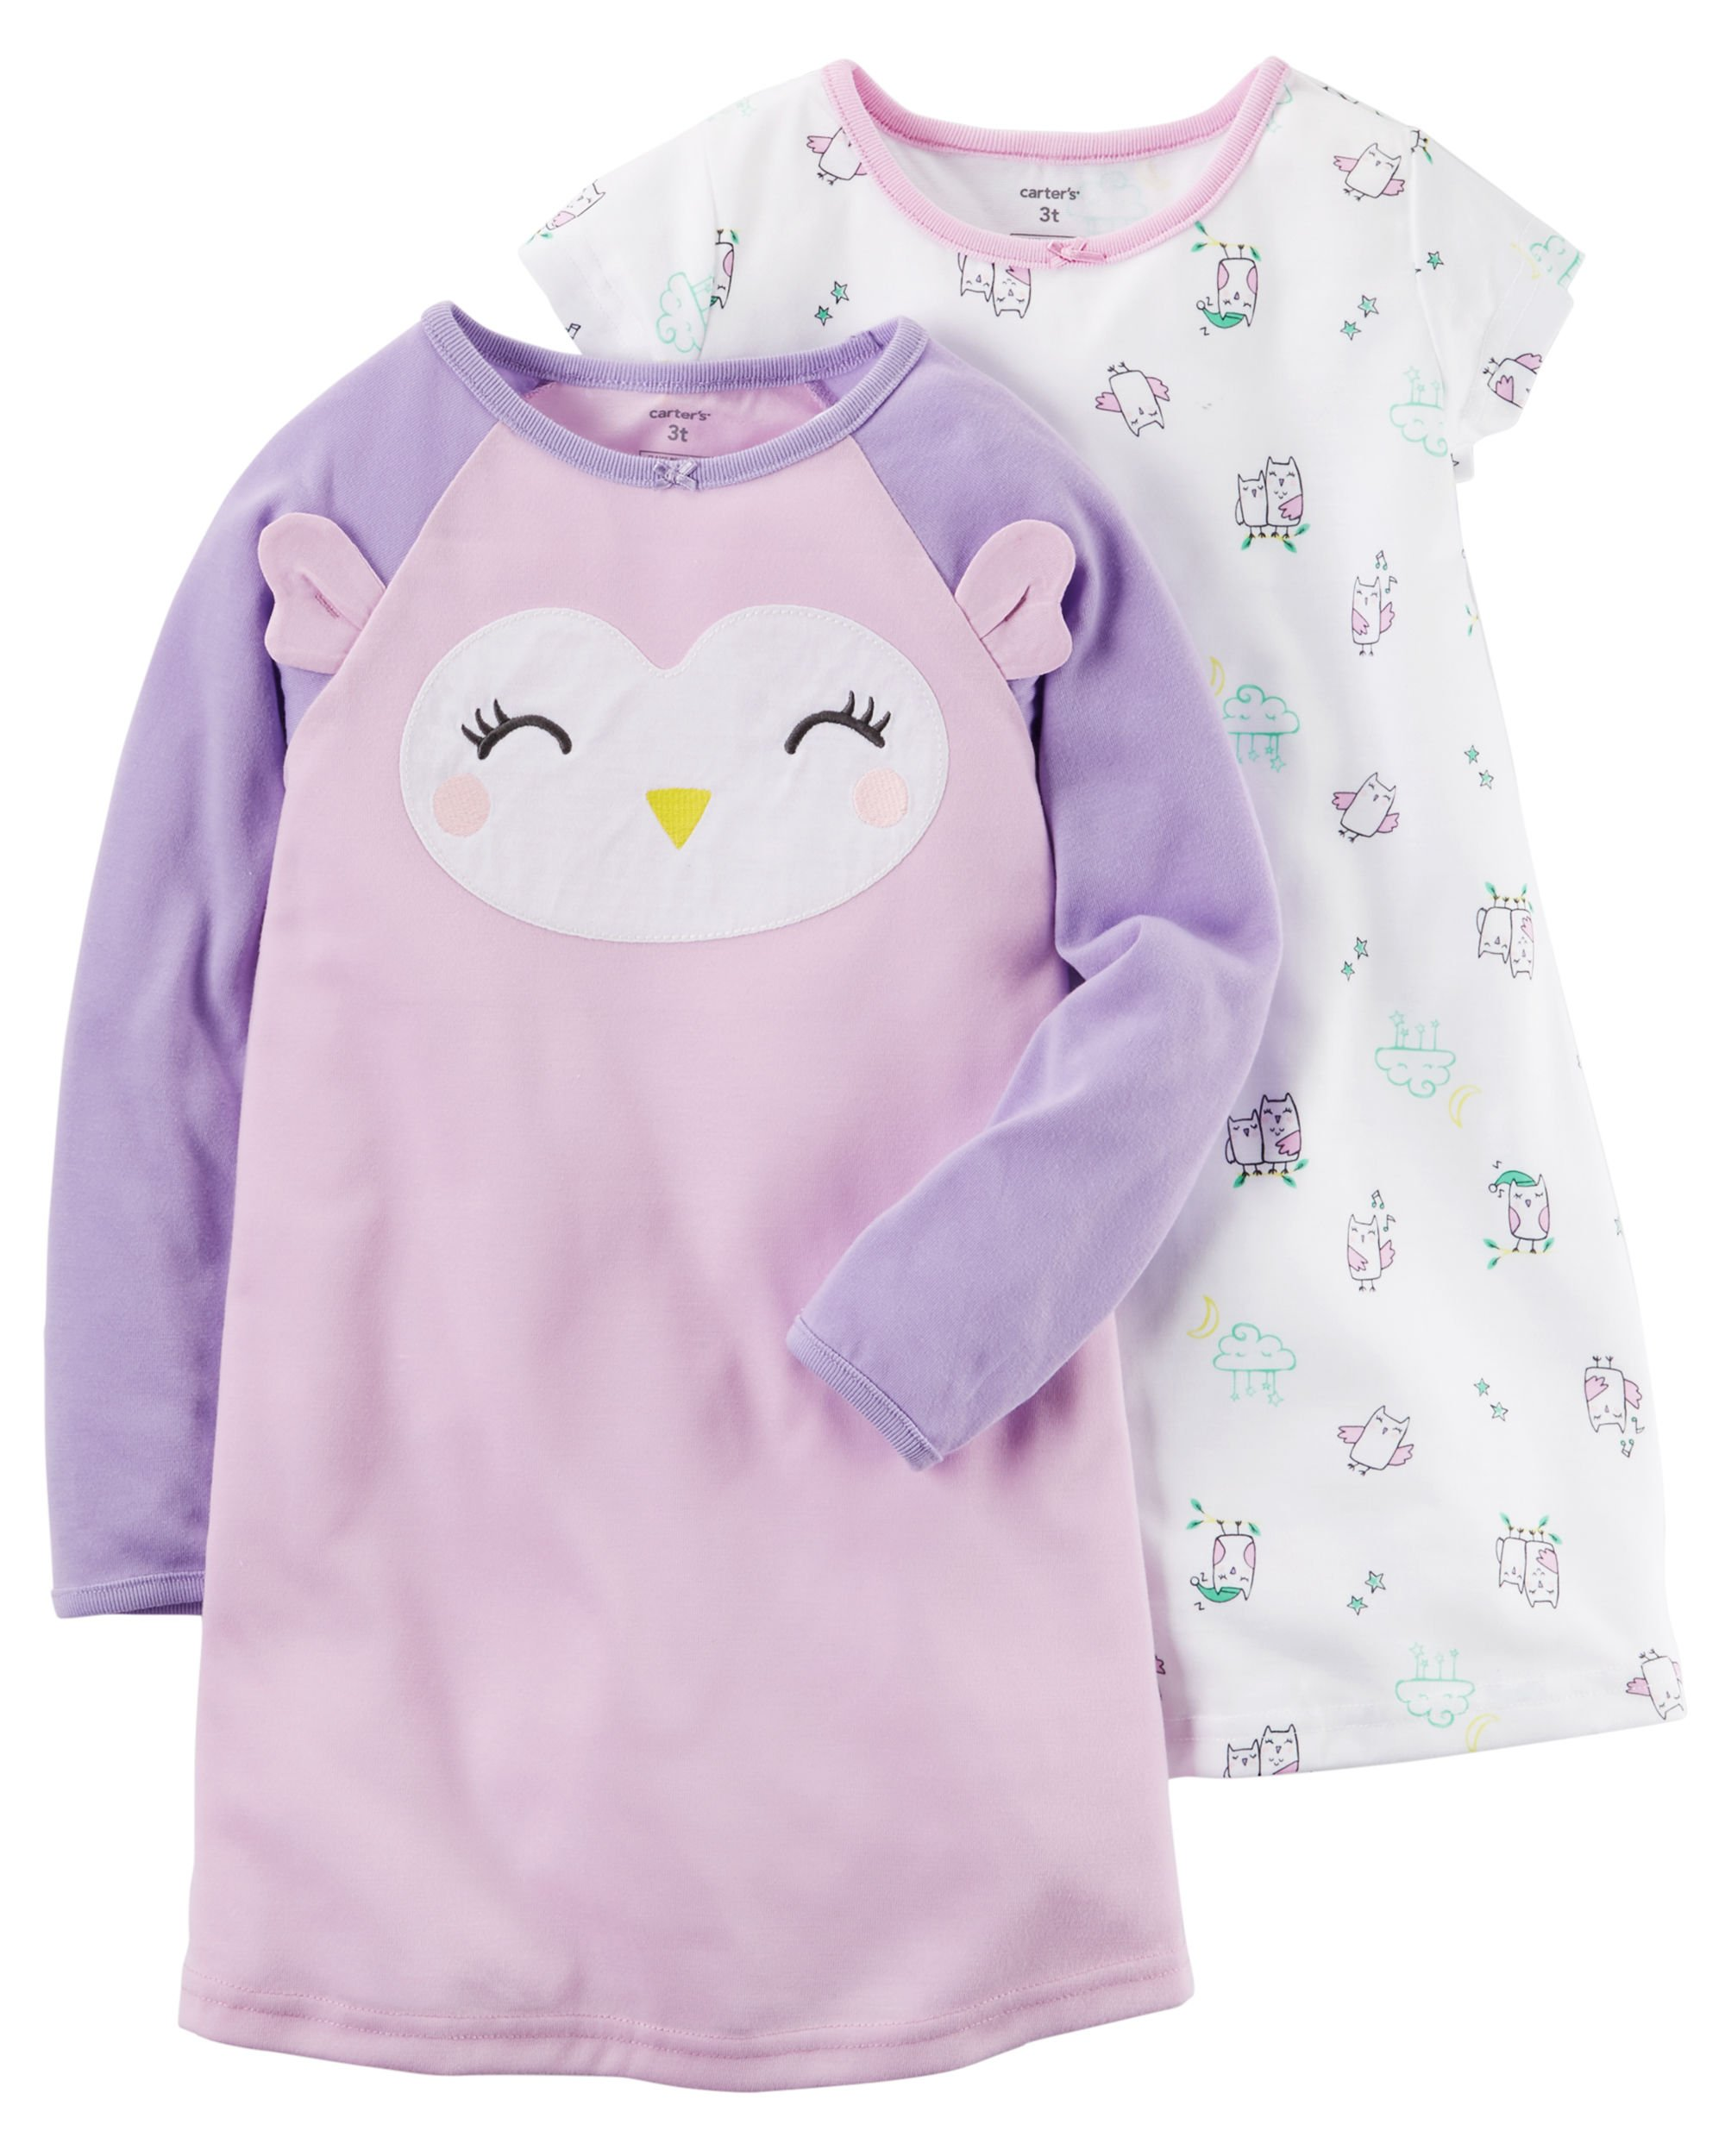 Carter's Purple Girl's 2-Pack Nightgowns, Owl Print (2-3)